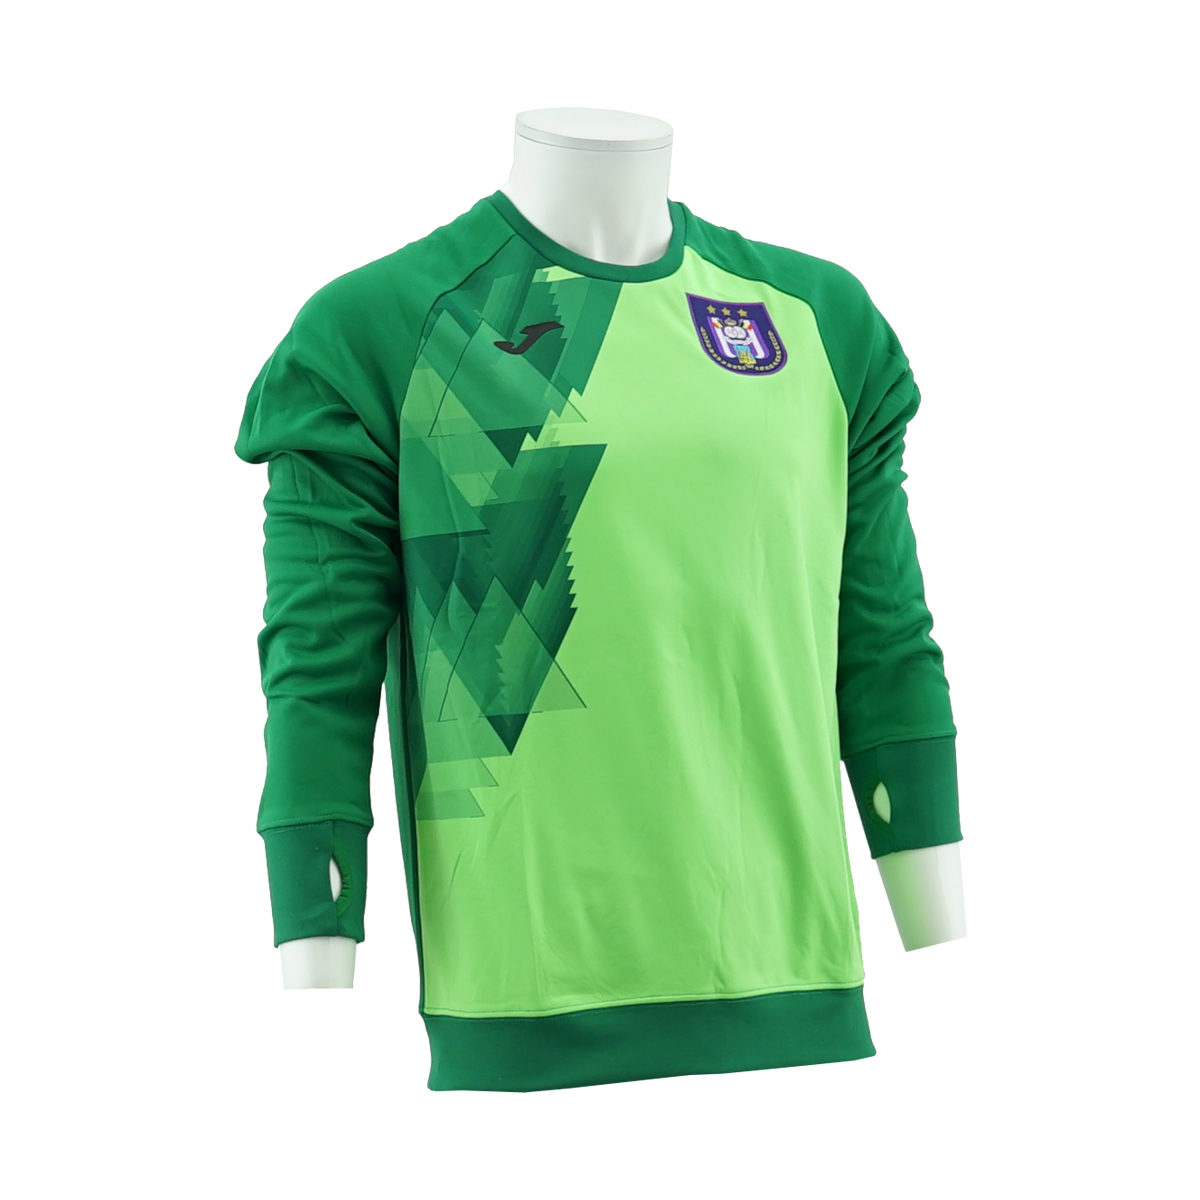 RSCA Trainingtop Kids 2020/2021 - Green